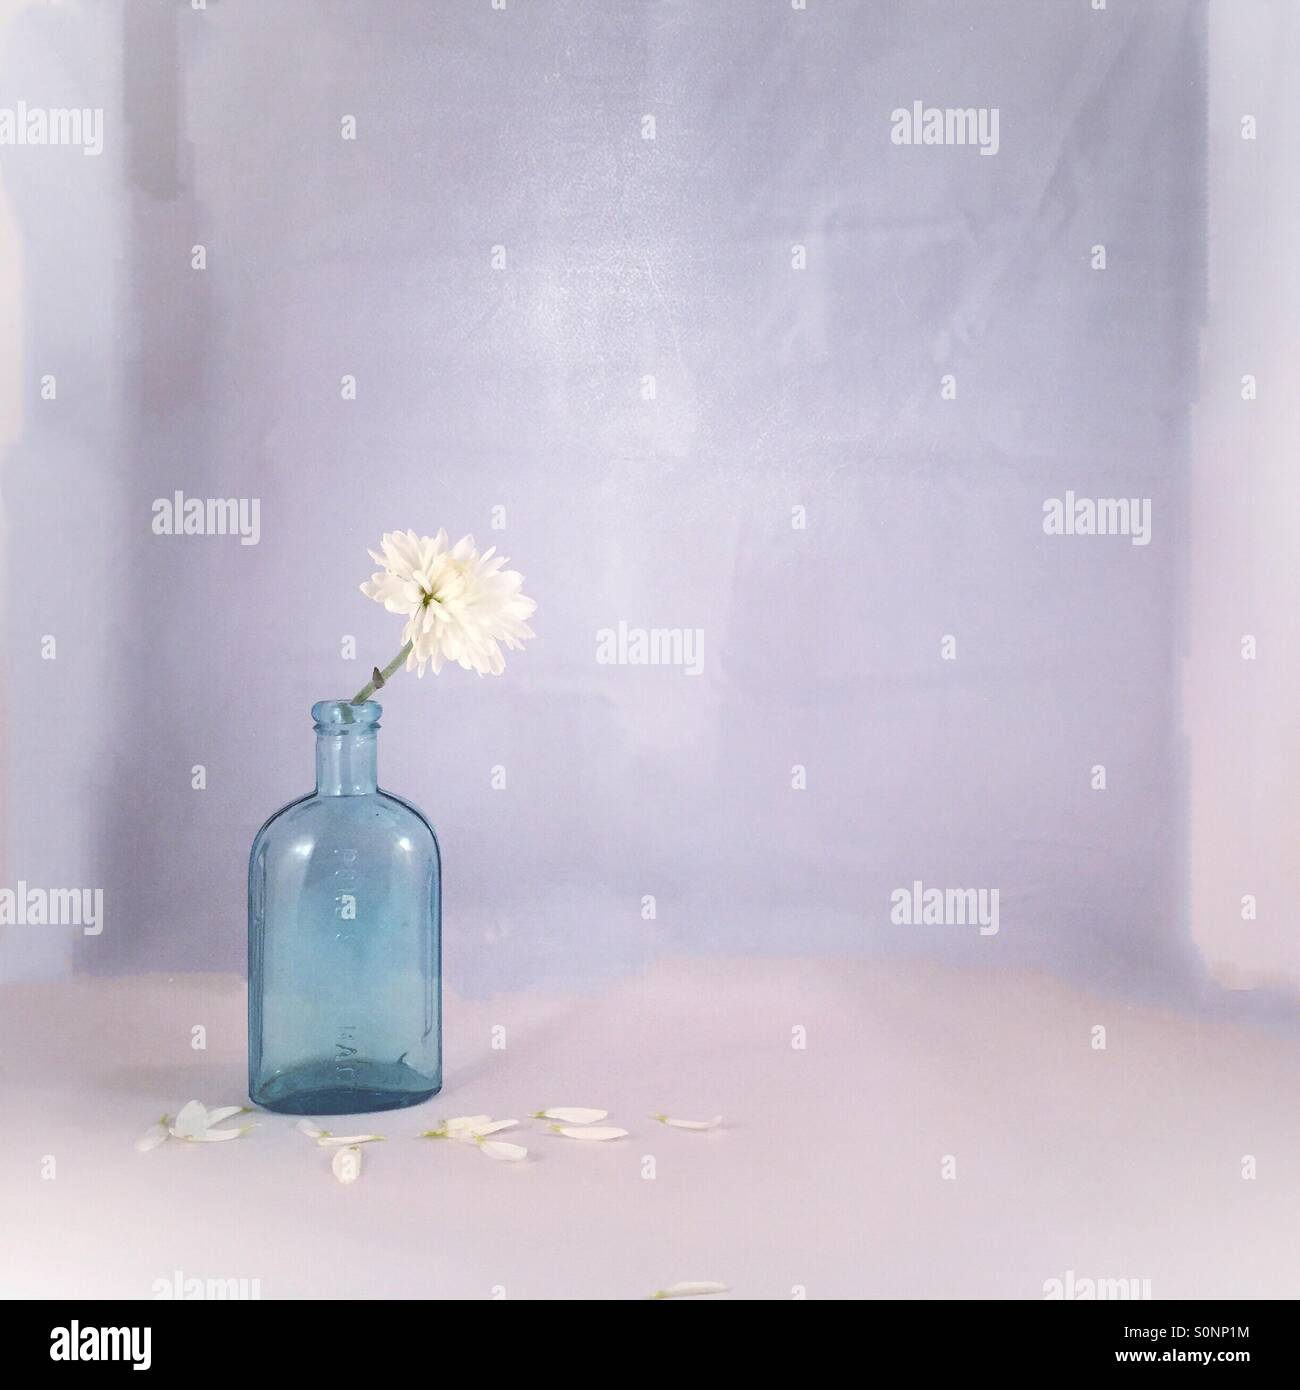 Blue Bottle White Flower Stock Photo 310264912 Alamy